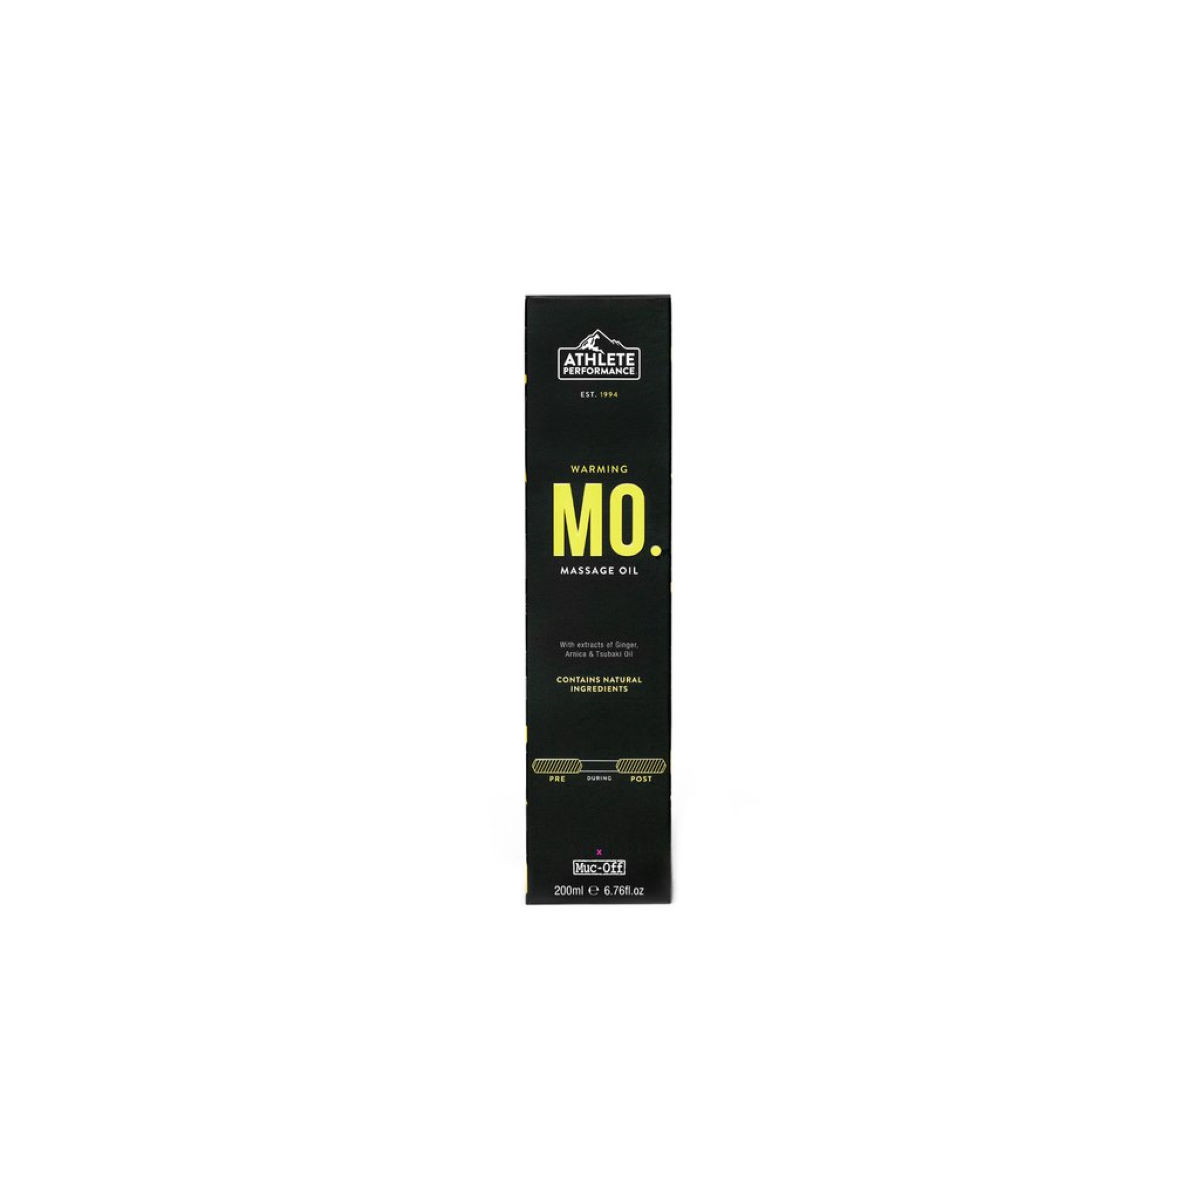 Aceite de masaje Athlete Performance (200 ml) - Cremas musculares